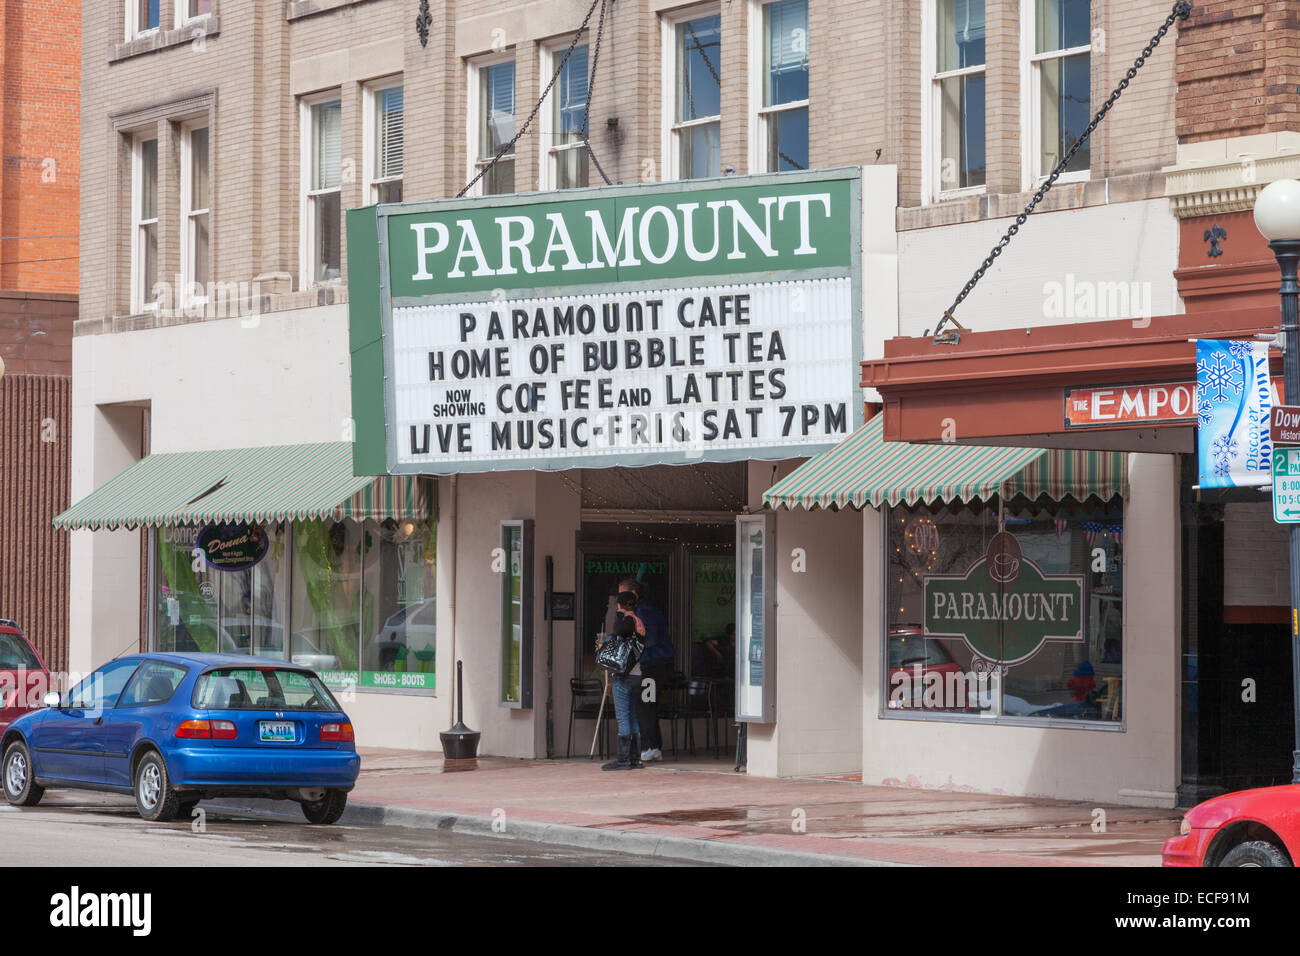 Paramount Cafe,1607 Capitol Ave, Cheyenne, WY 82001, USA, Wyoming, - Stock Image